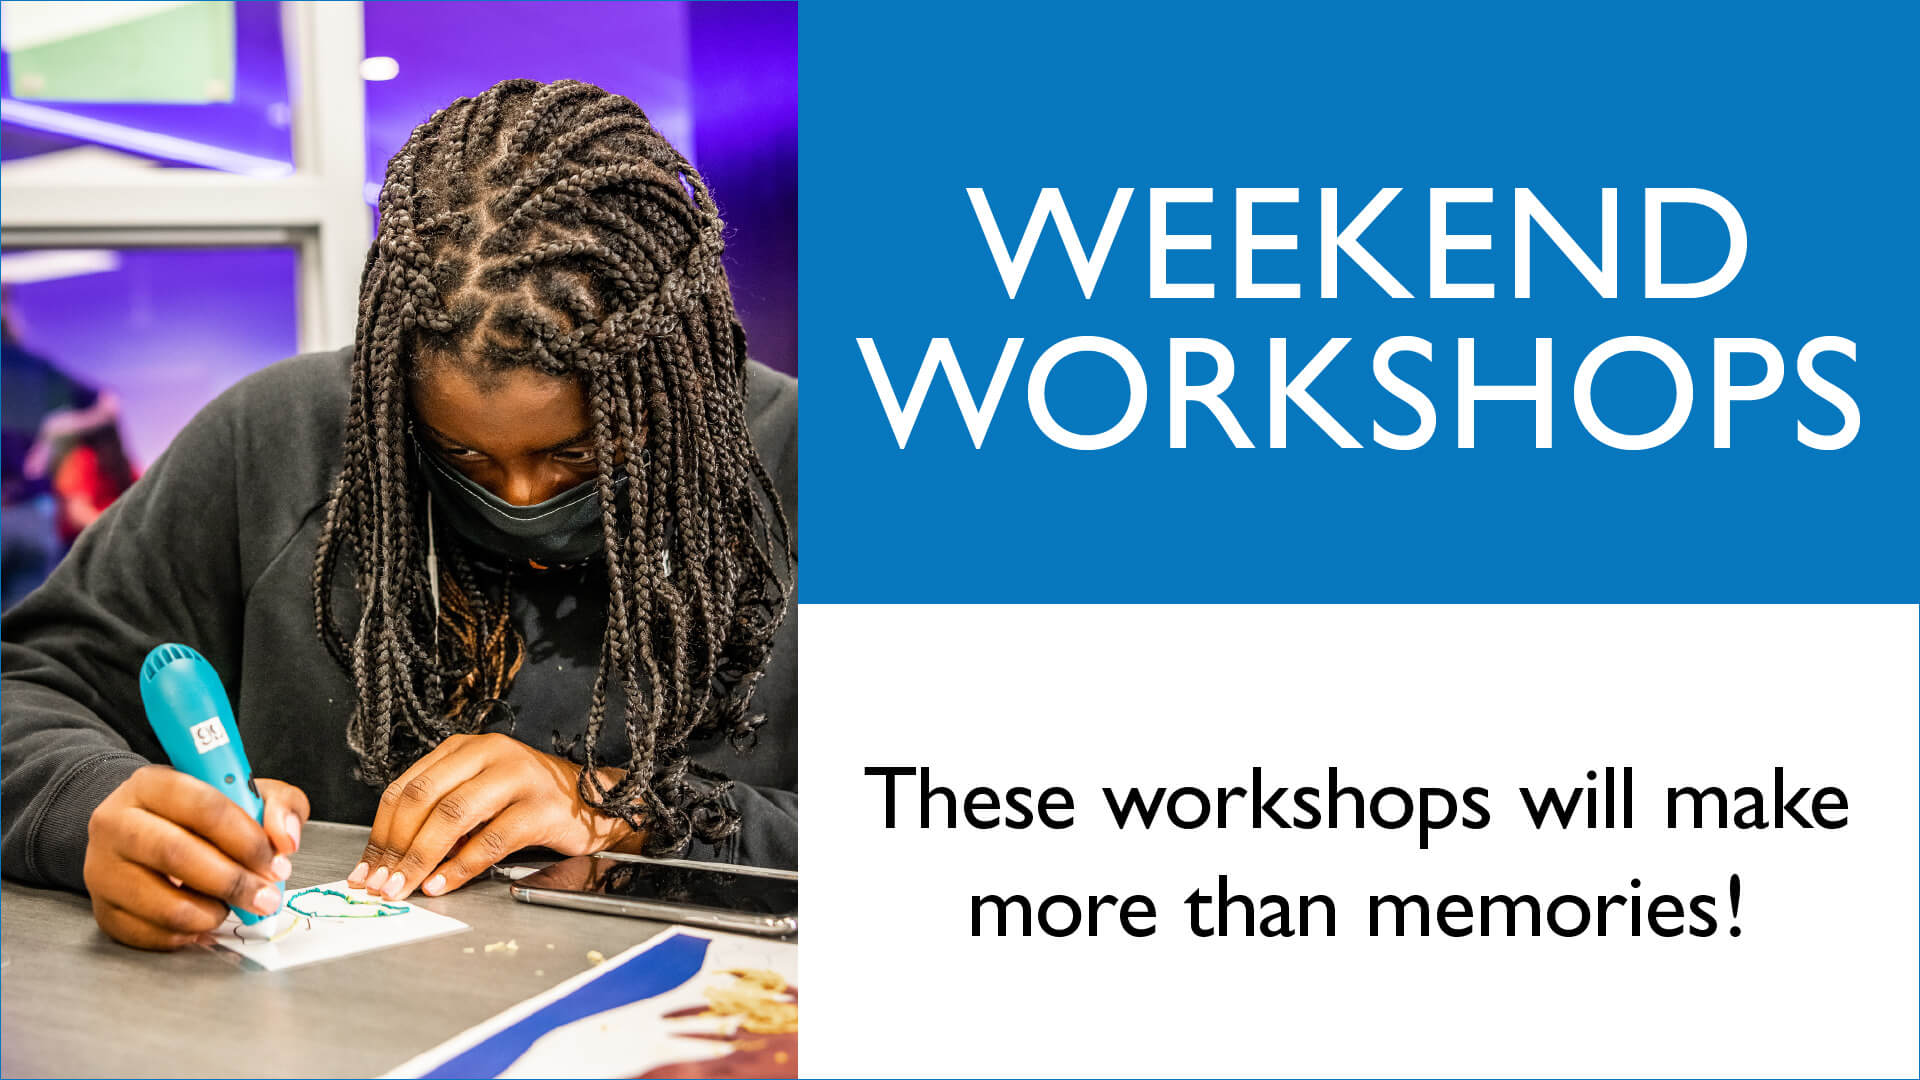 Weekend Workshops - These workshops will make more than memories!